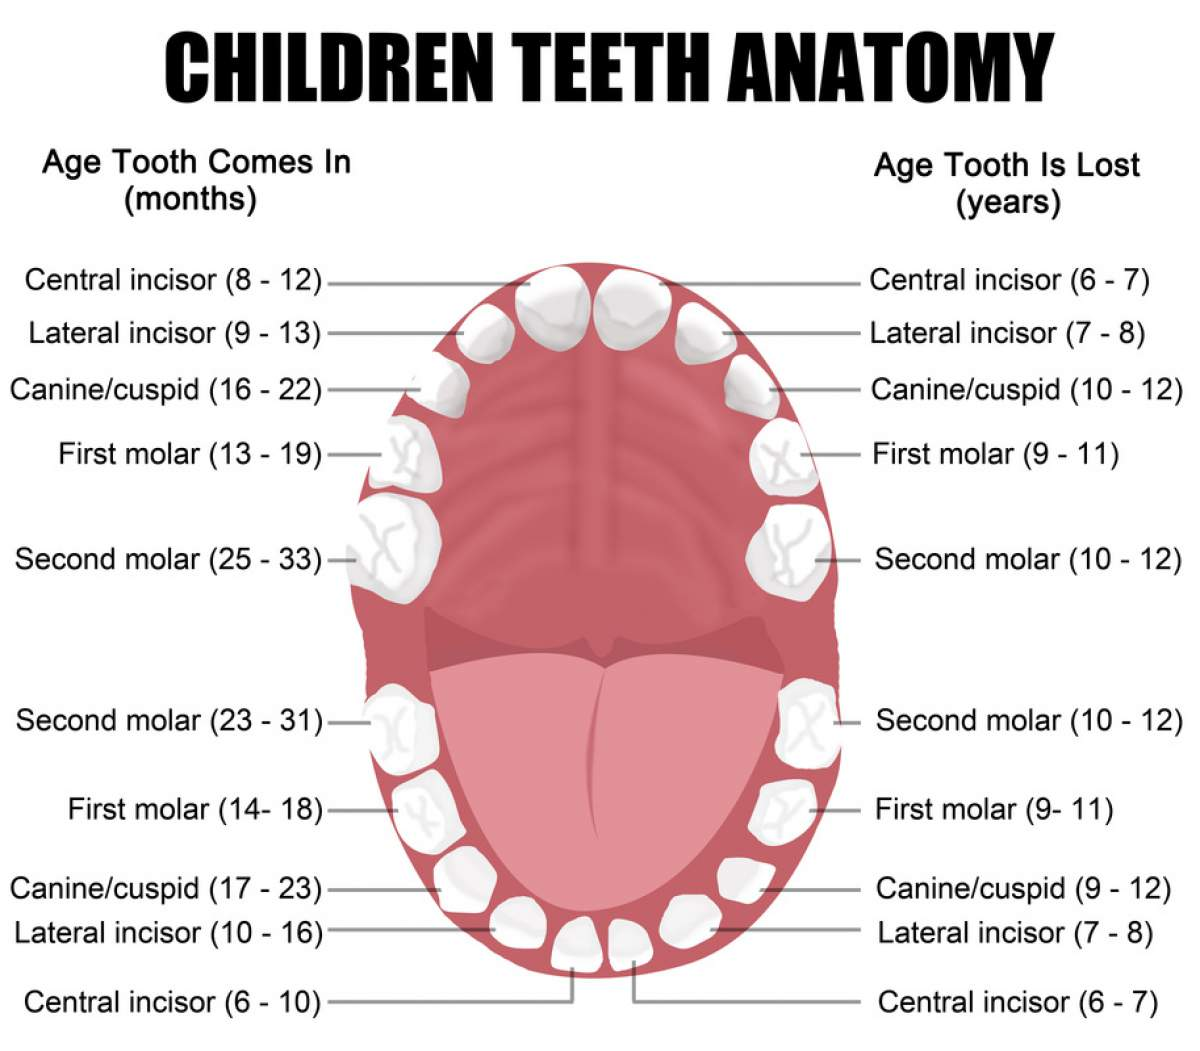 Children Teeth Anatomy | Buffalo.dental | Buffalo Dentist | 716-222-7522